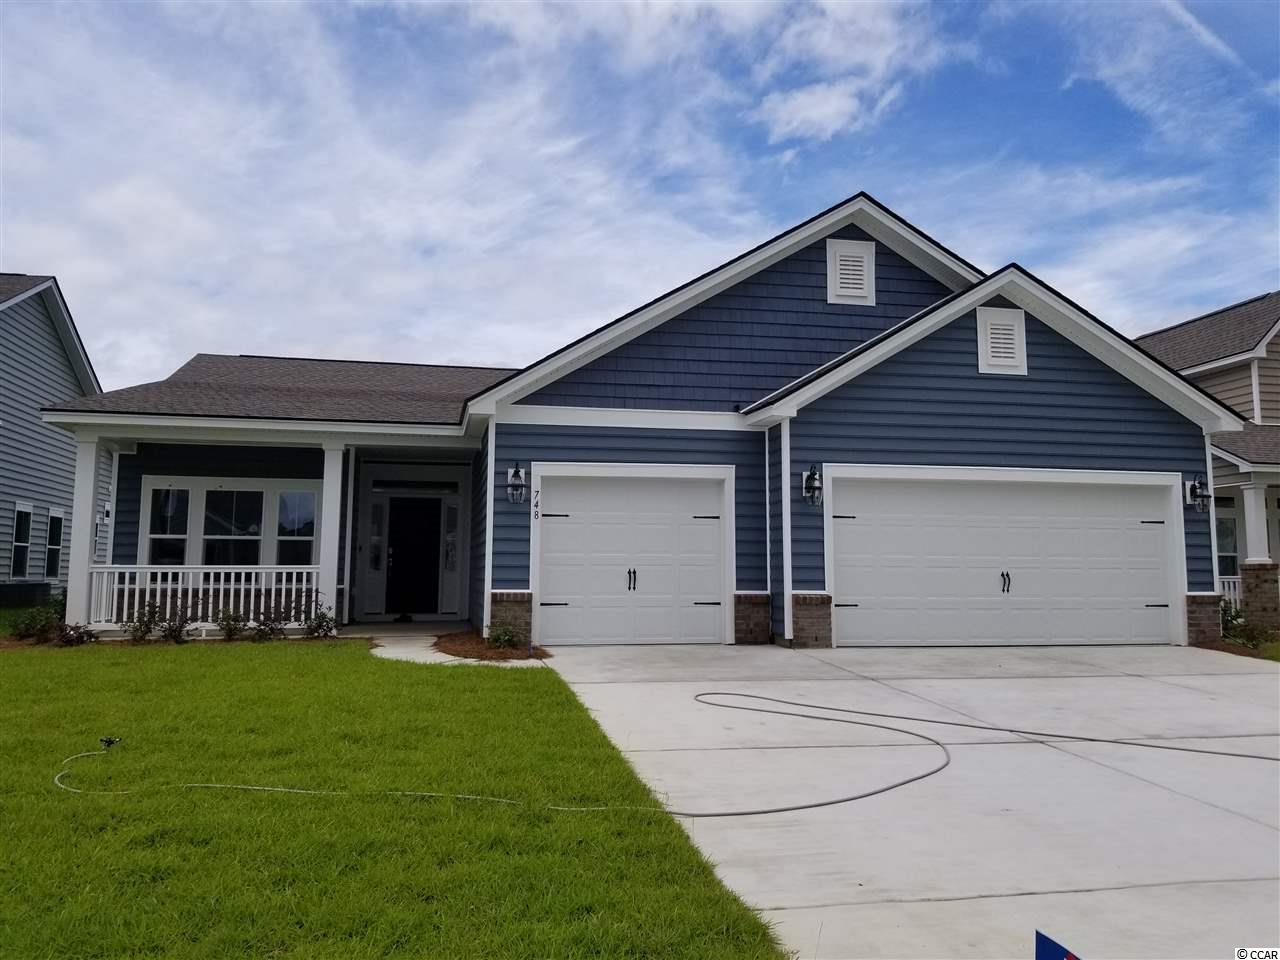 """This home will be MOVE IN READY mid-June 2020... The Muirwood is a fabulous new floor plan!  It has 2028 heated sq. ft. and is the perfect home for entertaining.  As you enter, the formal dining  room is open to a 21 x 21 family room.  The kitchen features lots of counter space, a breakfast bar and walk-in pantry.  The beautiful owner's suite features a large walk-in closet and a master bath which includes a linen closet and walk-in shower.   There are two additional bedrooms, full bath and a three car garage.  The homes at Forestbrook Estates include upgrades like tile and laminate flooring, granite countertops in the kitchen, GE stainless steel appliances including a gas range, built-in microwave and dishwasher. Also included is upgraded cabinetry with 36"""" and 42"""" staggered maple cabinets, Tankless Rannai hot water heater and much, much more!!           **Photos are of the Model home."""